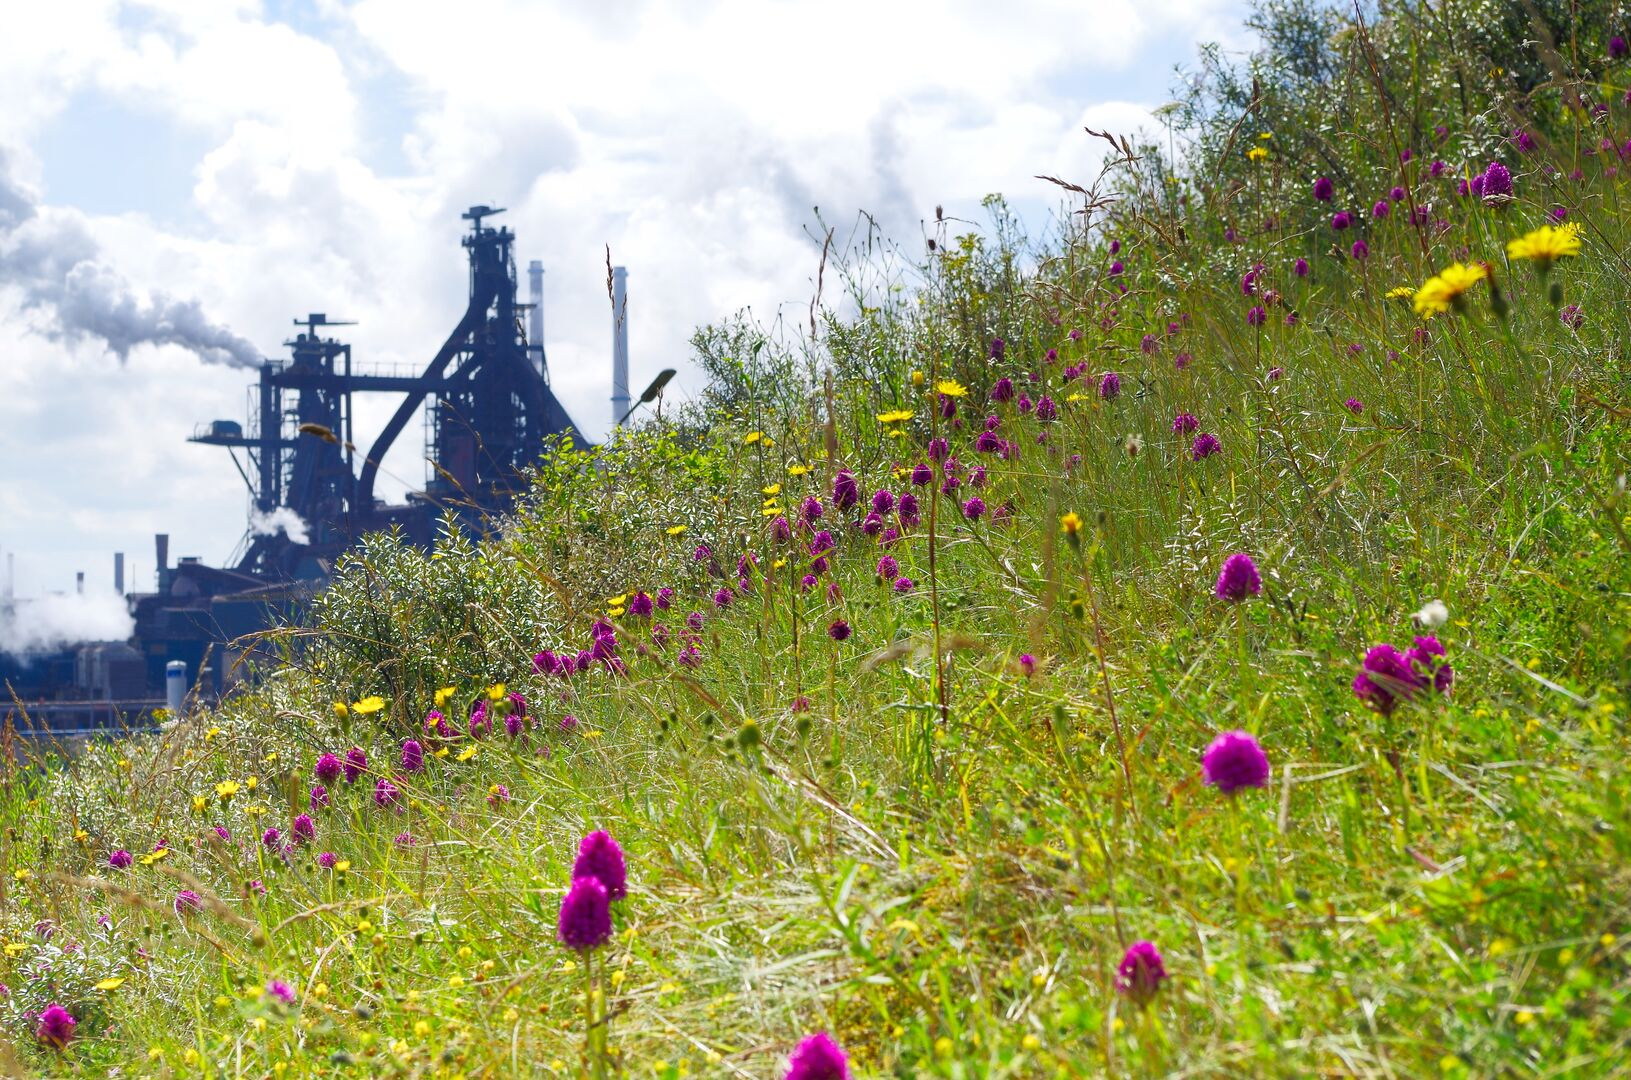 Tata Steel IJmuiden blast furnace with nature landscape